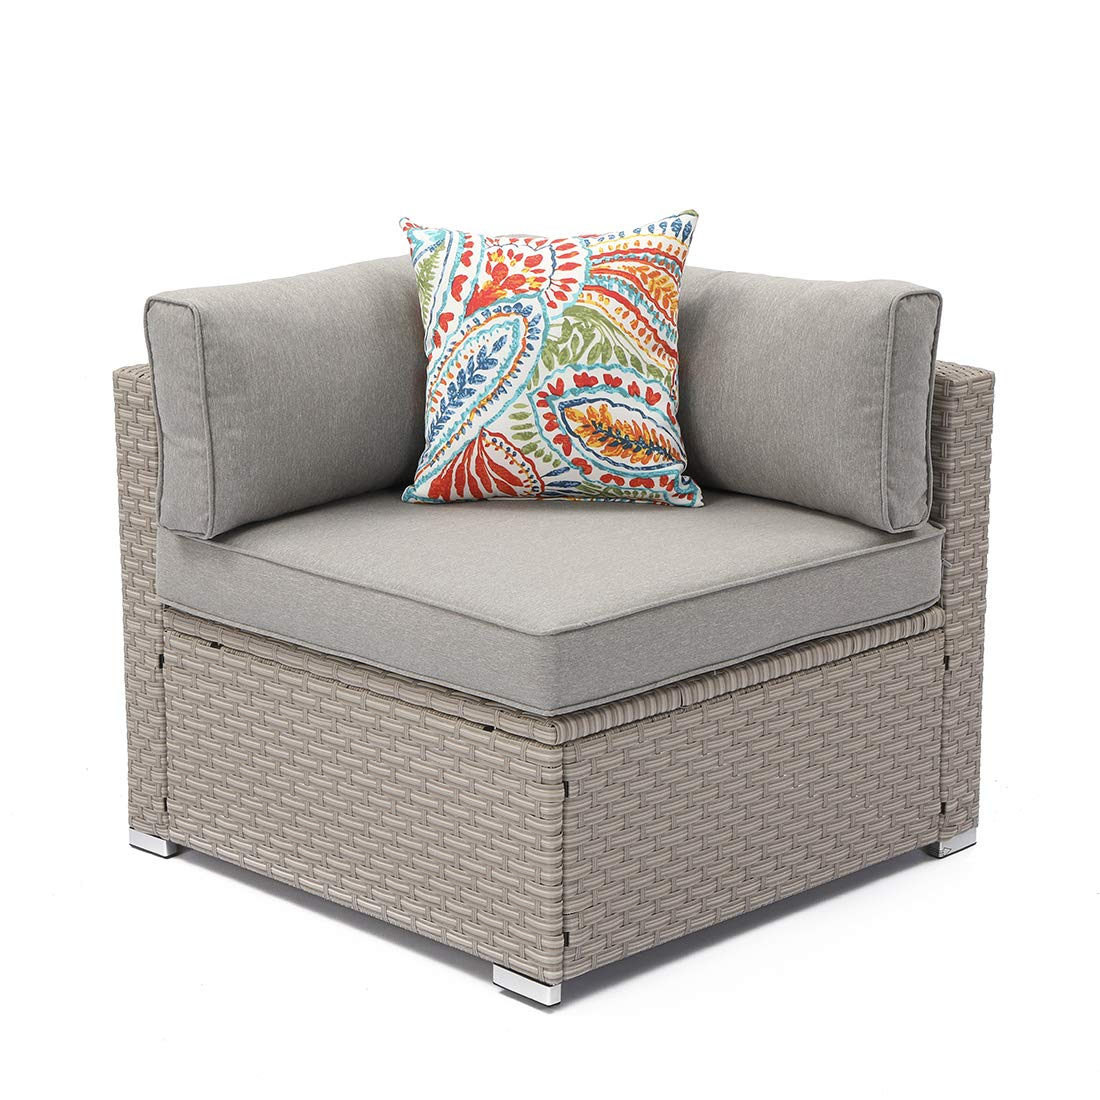 COSIEST Outdoor Furniture Add-on Right Corner Chair for Expanding Wicker Sectional Sofa Set w Warm Gray Thick Cushions, 1 Floral Fantasy Pillow for Garden, Pool, Backyard